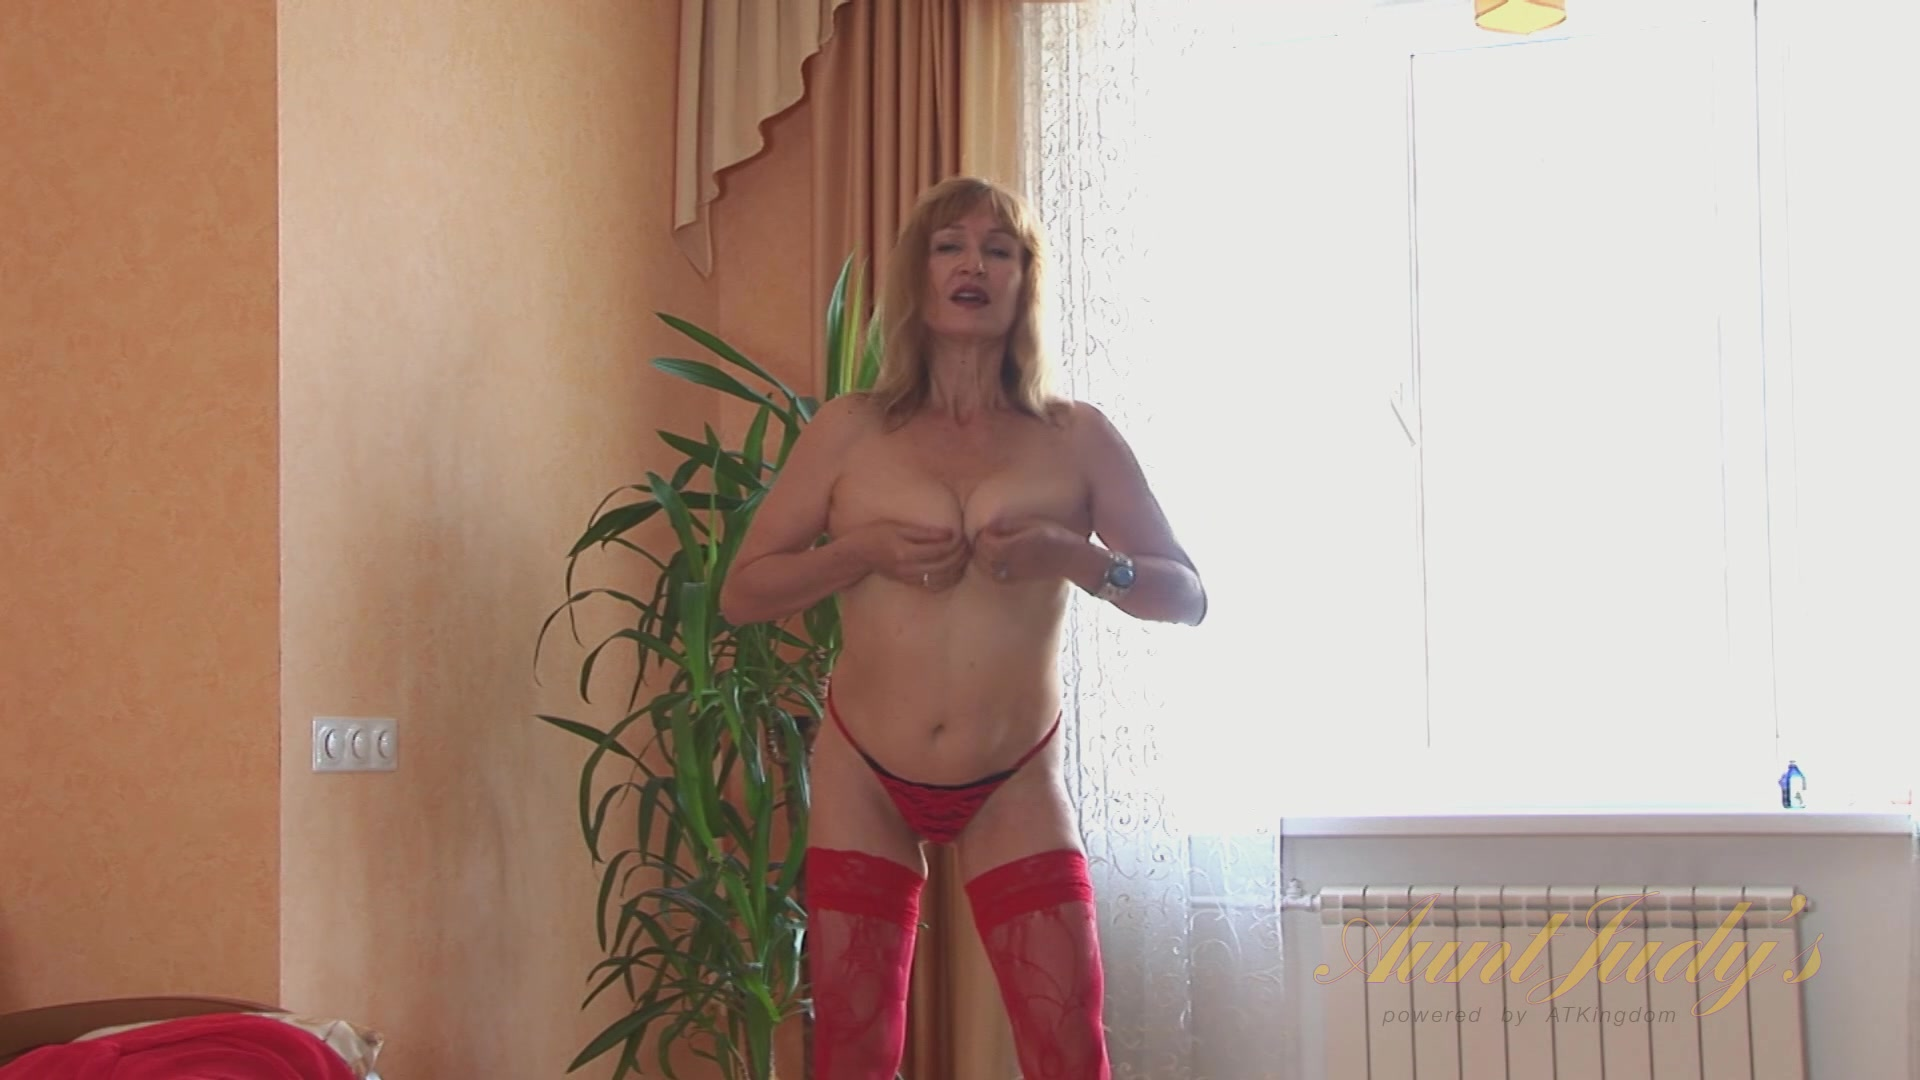 Video from AuntJudys: Annabella indian girl peeing video